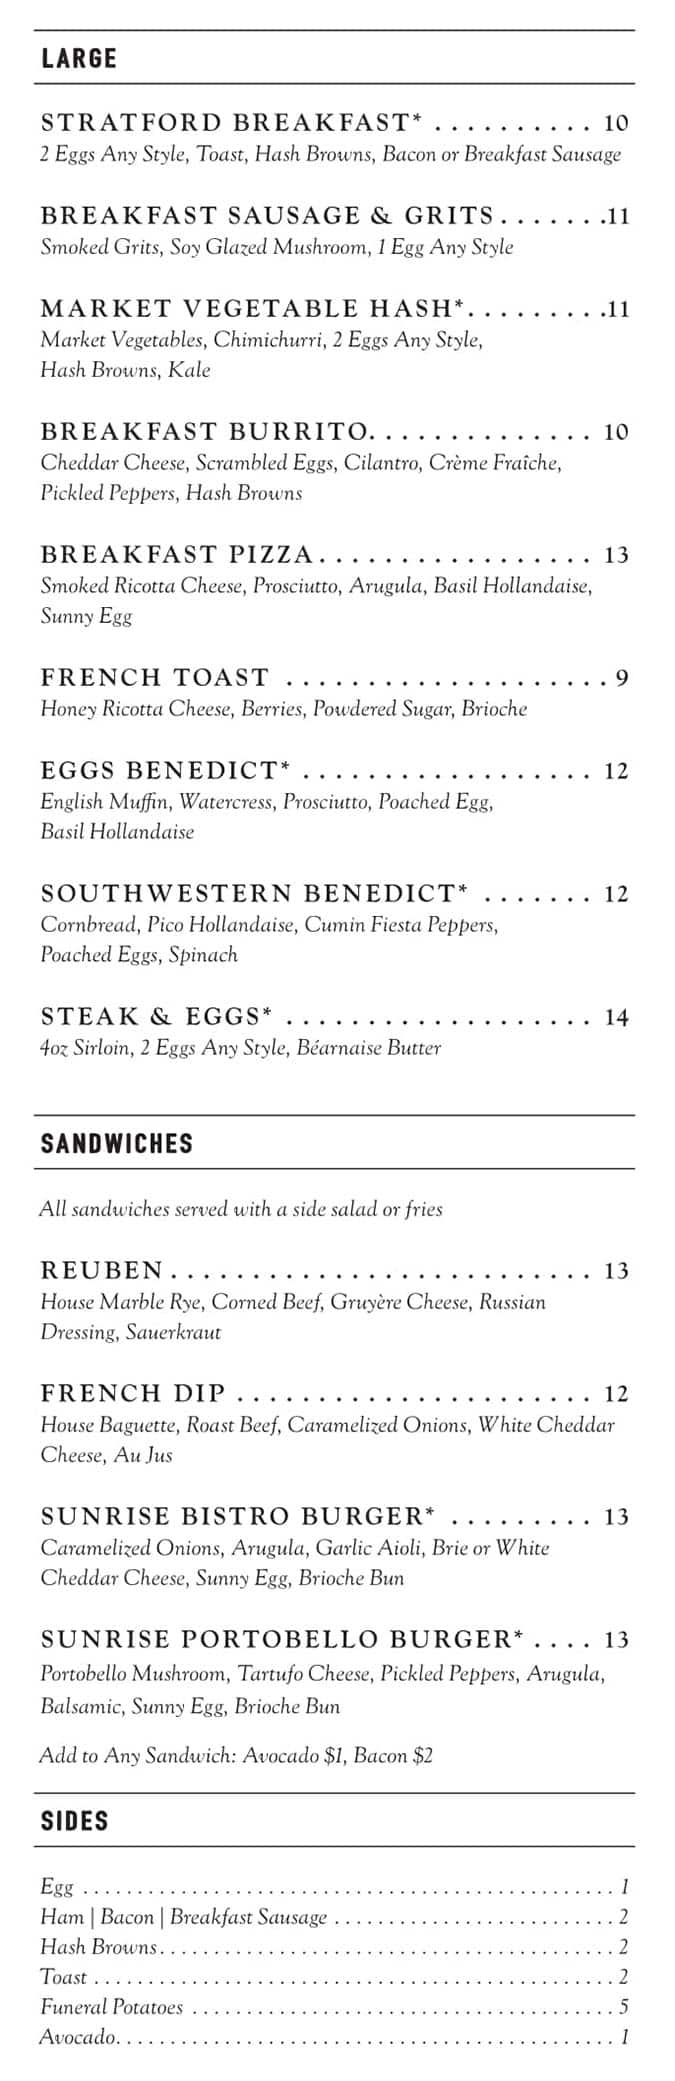 Stratford Proper brunch menu - large plates, sandwiches, sides